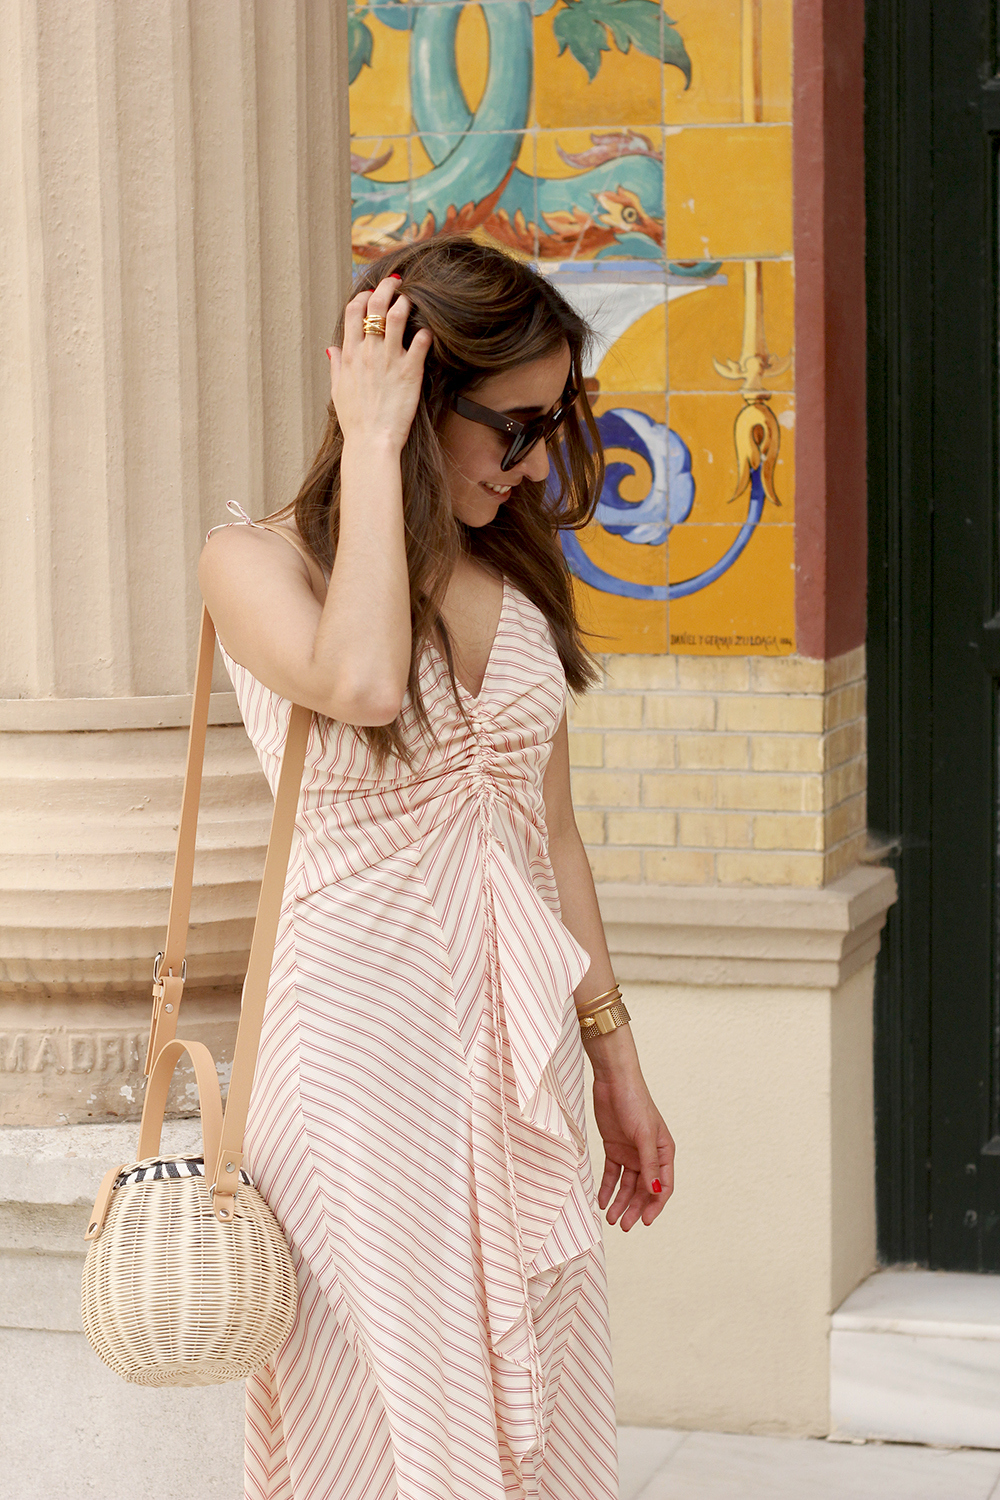 Perfect dress for summer flat sandals wicker bag céline sunnies style fashion outfit12